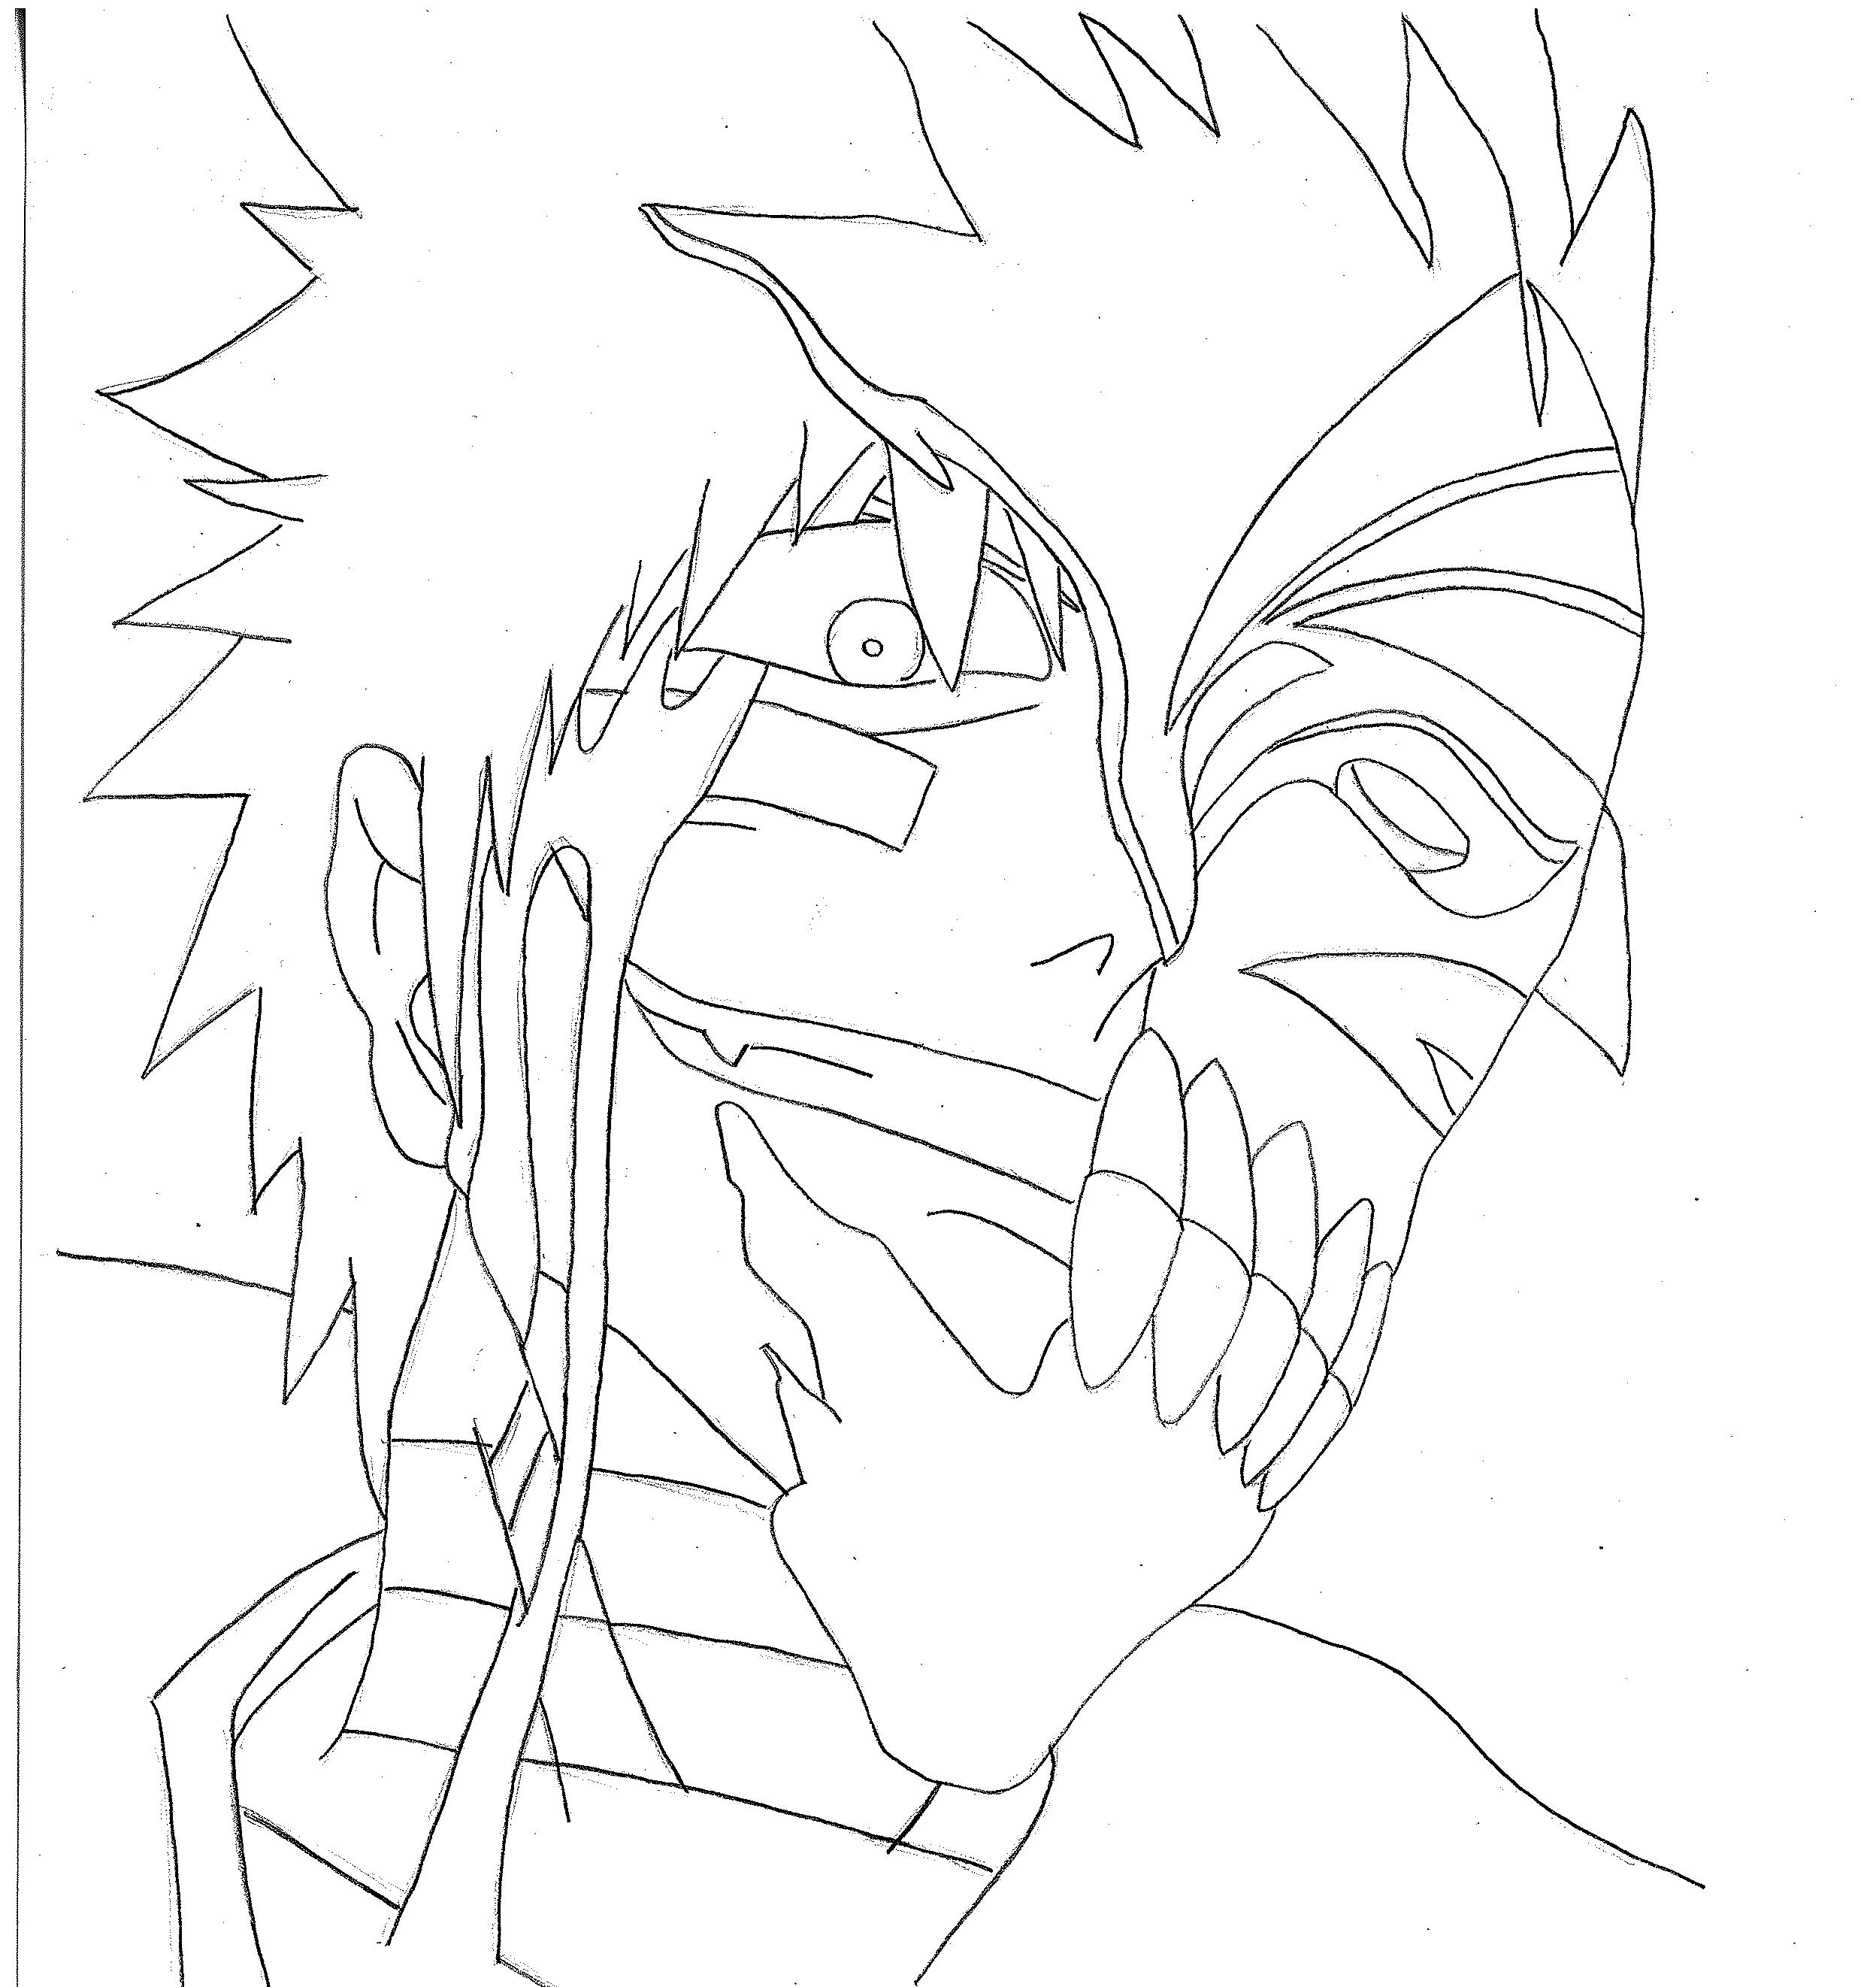 bleach coloring pages 17 best images about bleach coloring pages on pinterest bleach pages coloring